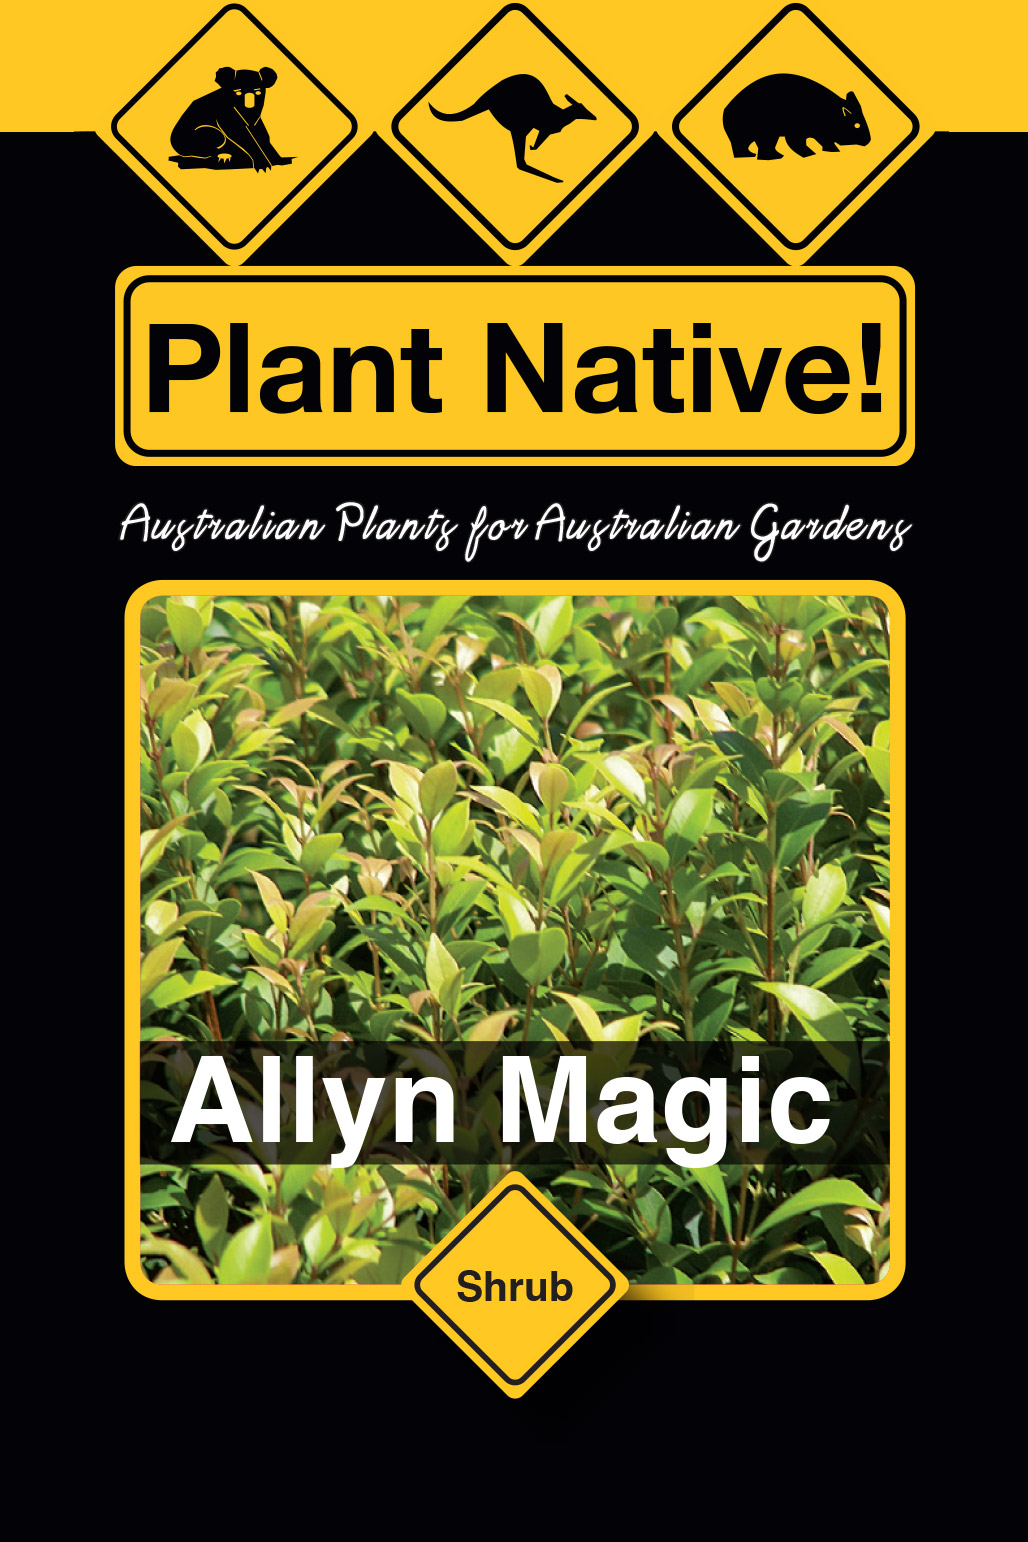 Allyn Magic - Plant Native!